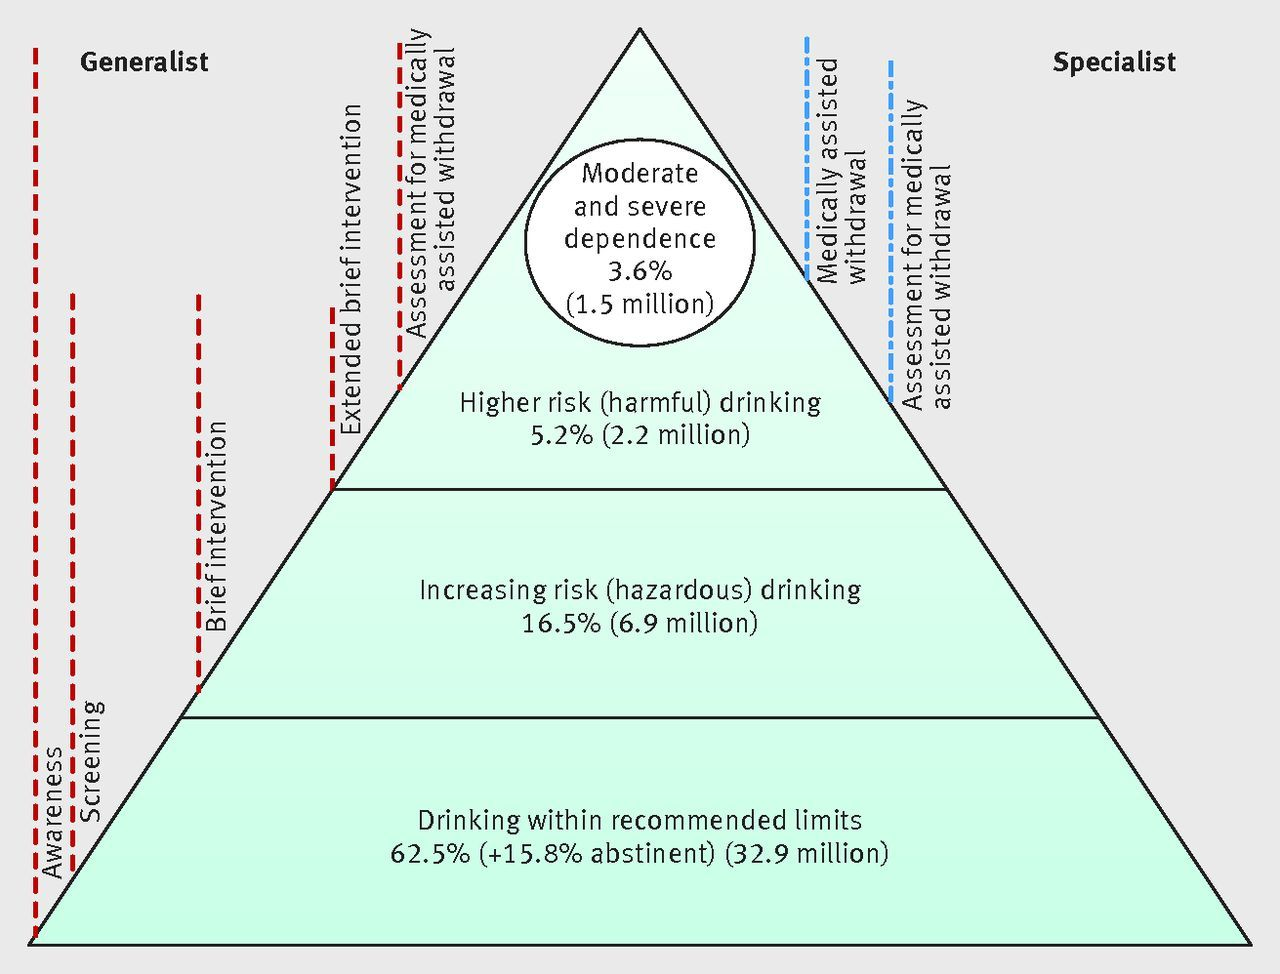 Classification and definition of alcohol use disorders